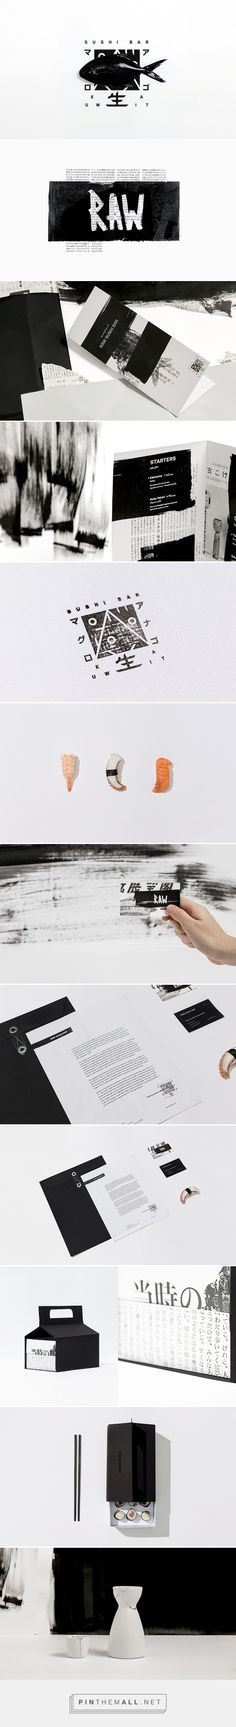 Raw Sushi Bar Restaurant Branding by Futura | Fivestar Branding Agency – Design and Branding Agency & Curated Inspiration Gallery